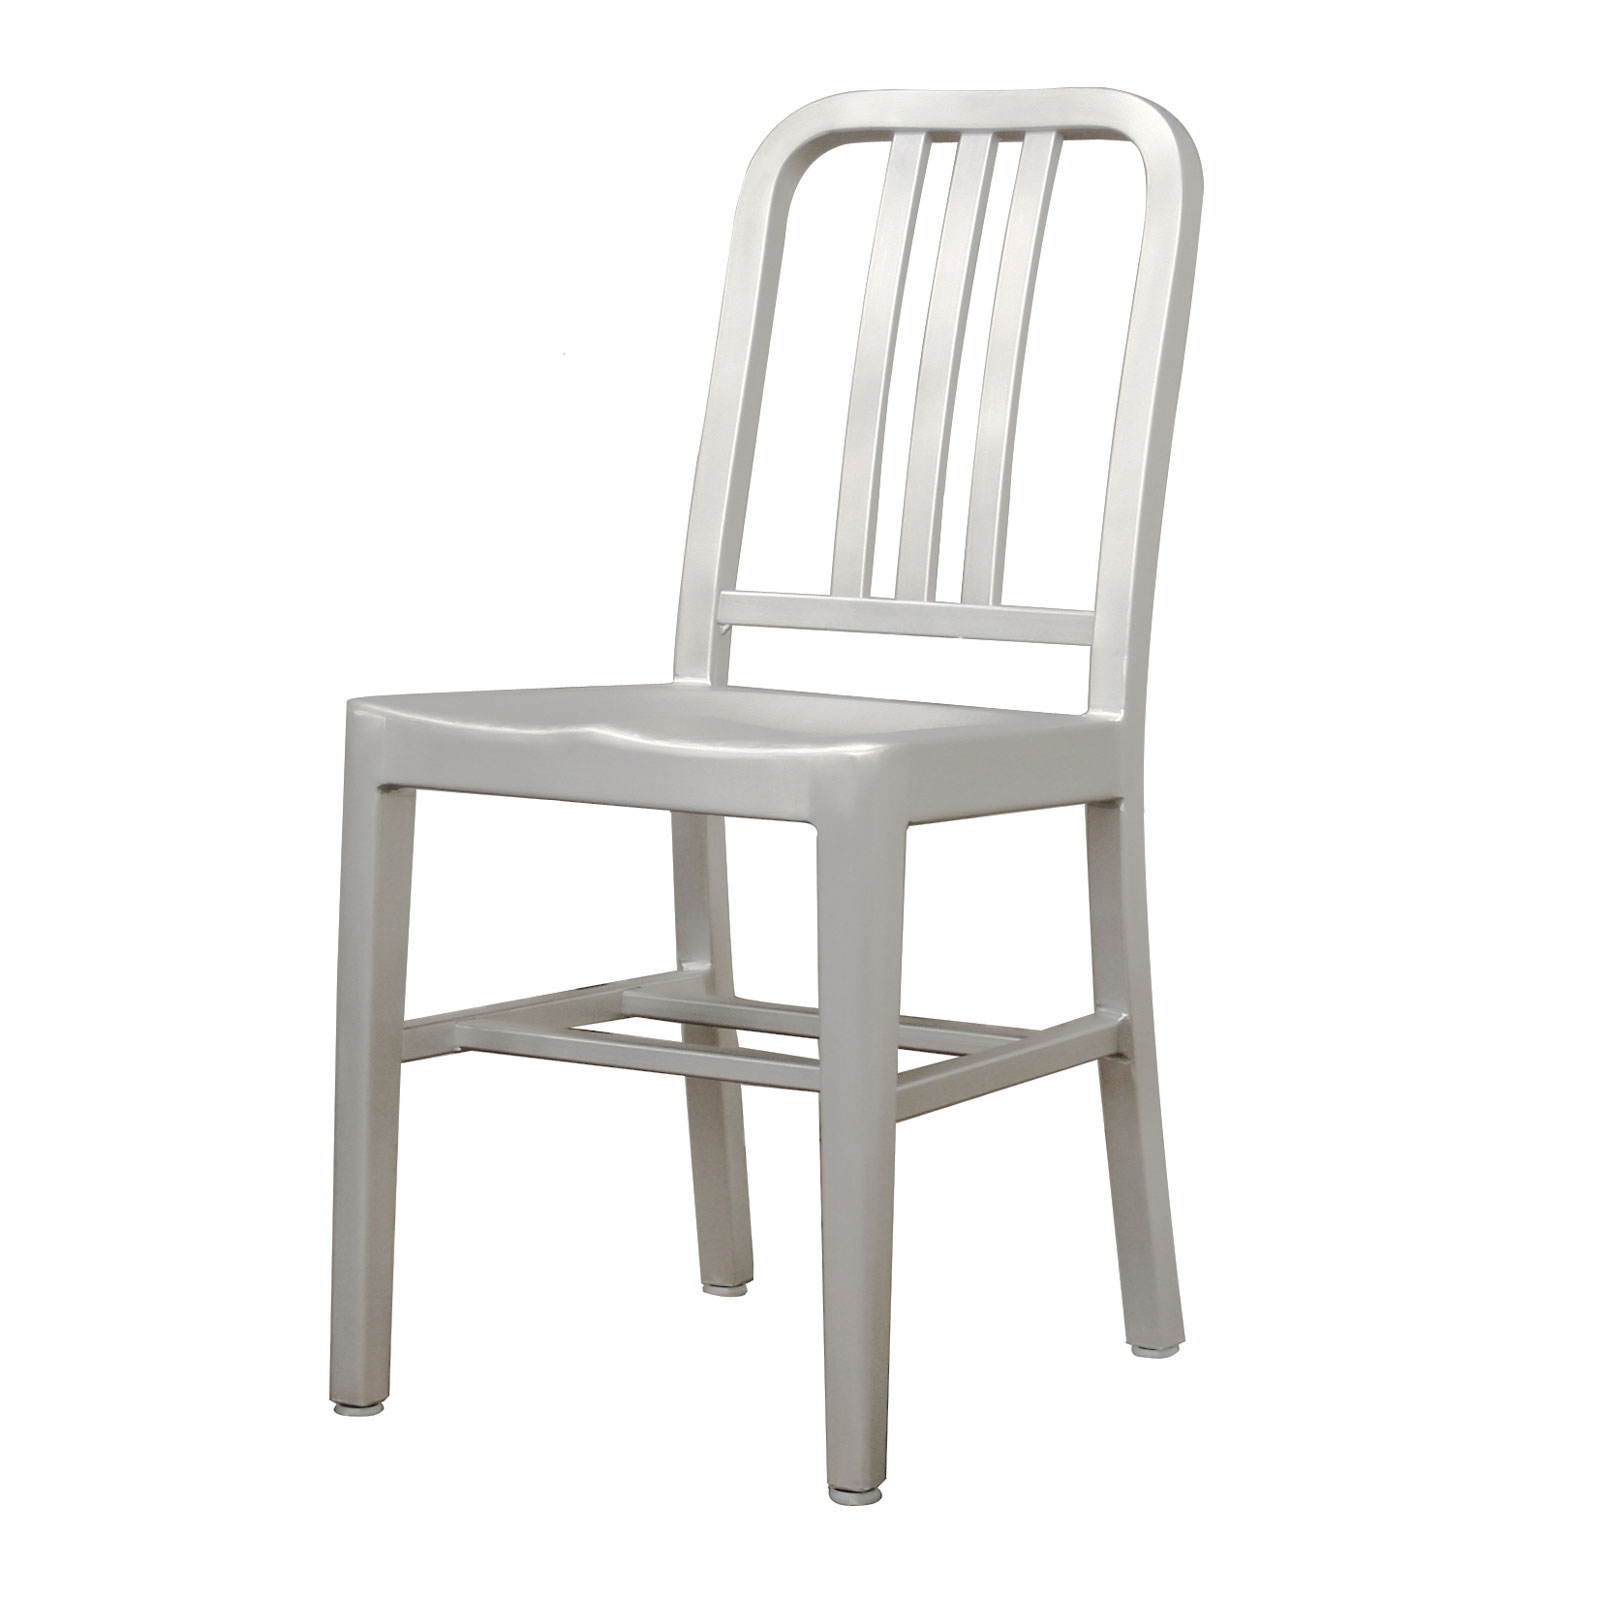 Modern Cafe Chair In Brushed Aluminum   Set Of 2   By Wholesale Interiors    LC 901A Price: $487.99